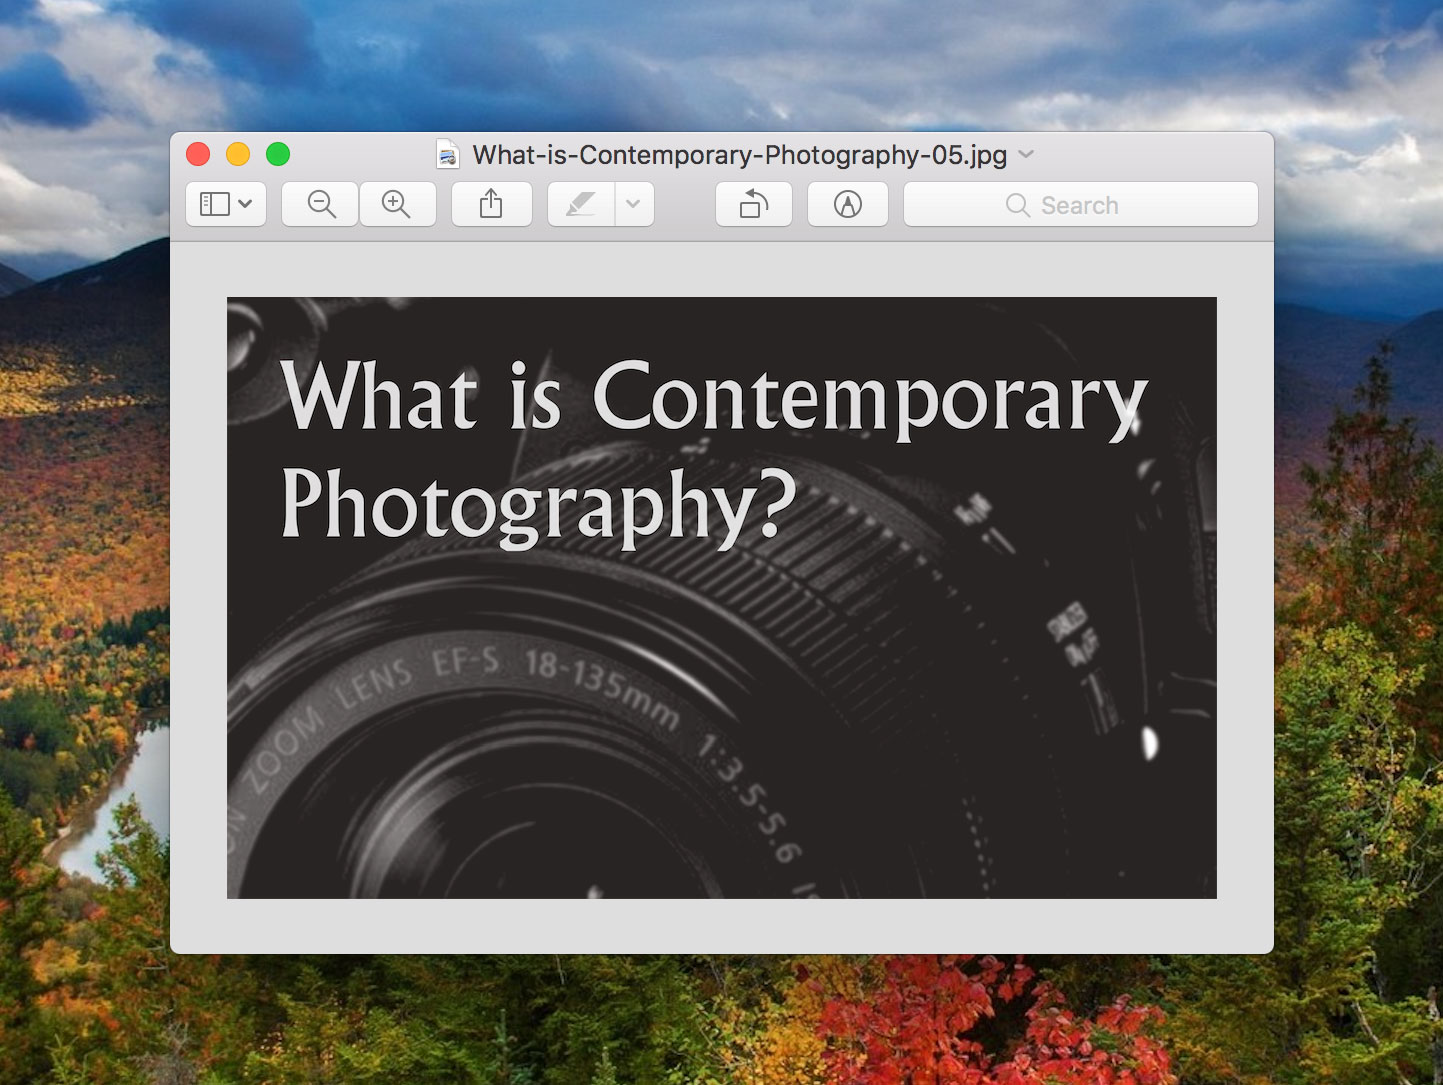 What-is-Contemporary-Photography-rec-02.jpg